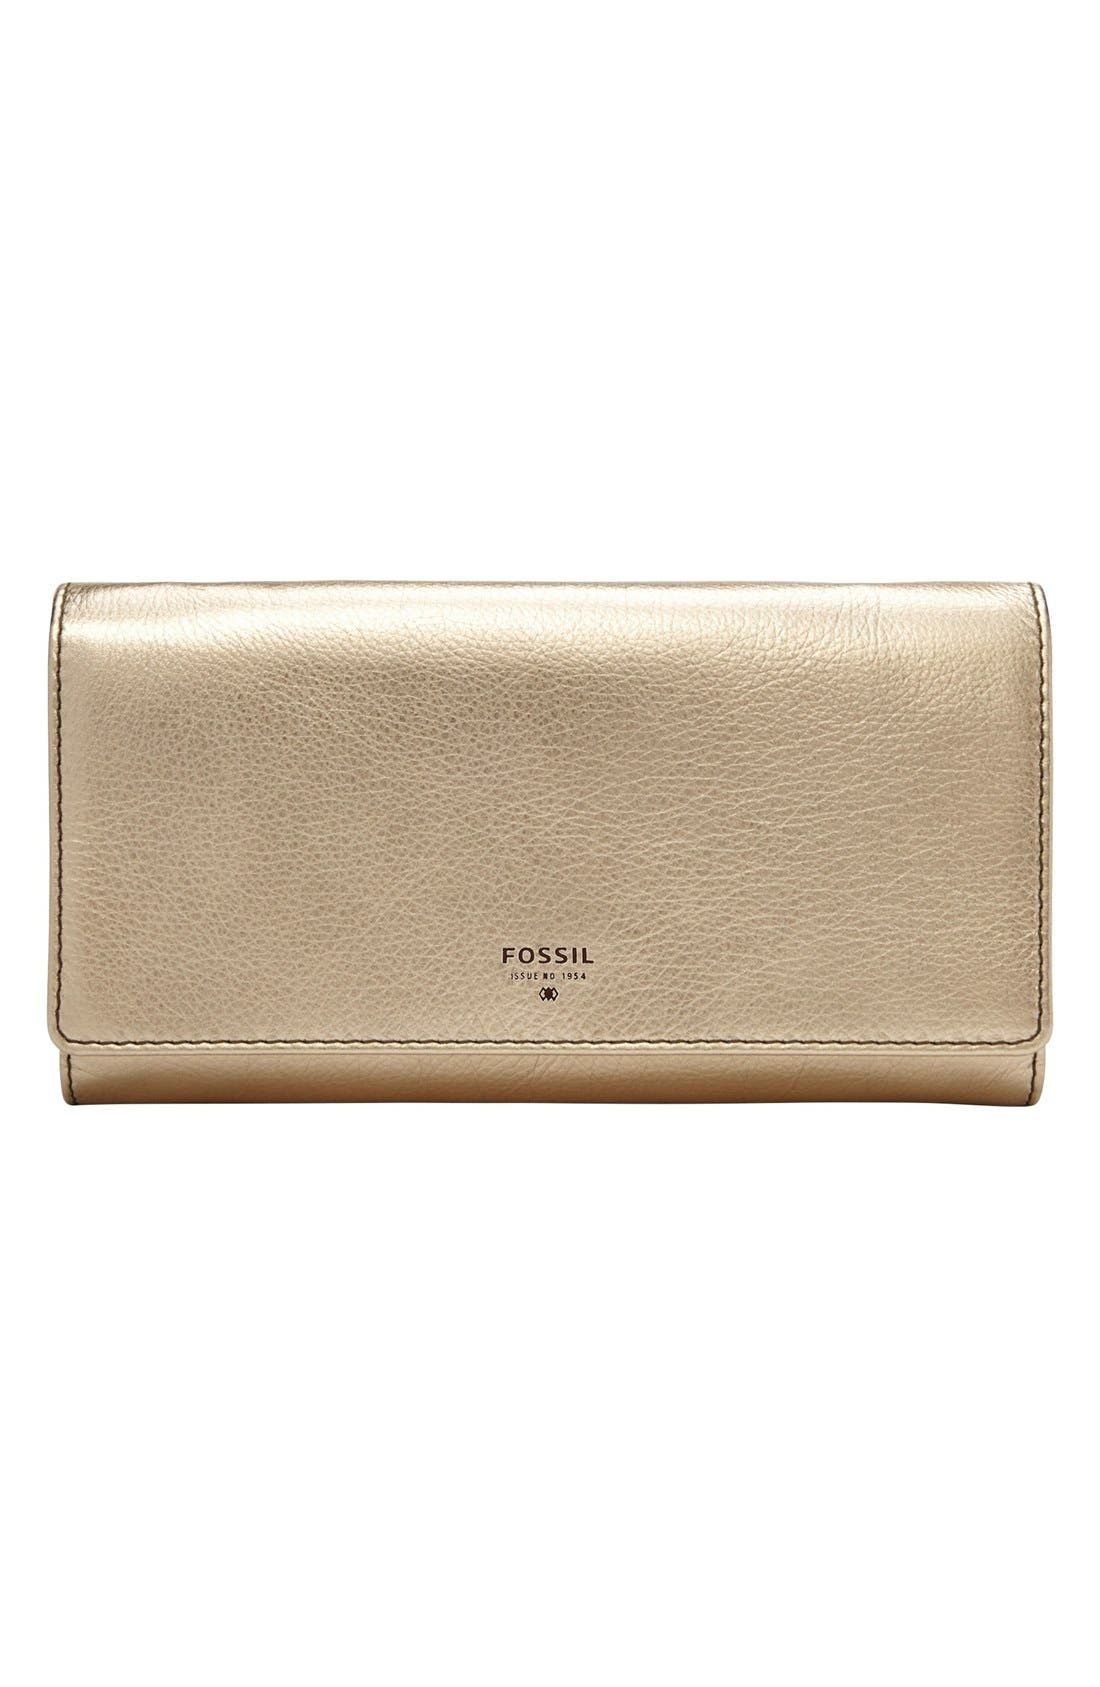 FOSSIL 'Sydney' Metallic Leather Flap Wallet, Main, color, 711